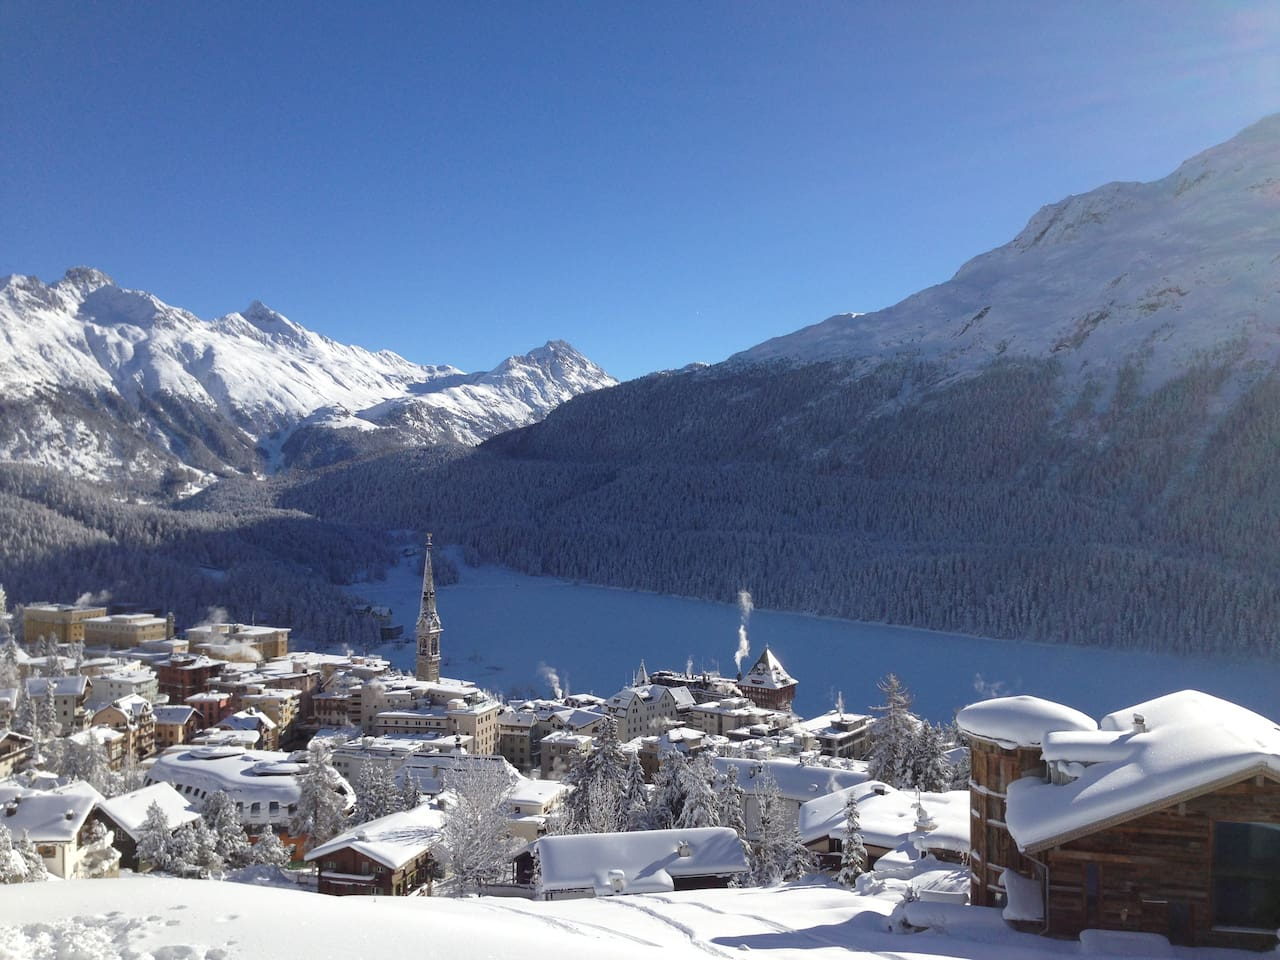 The view of St. Moritz from the apartment.